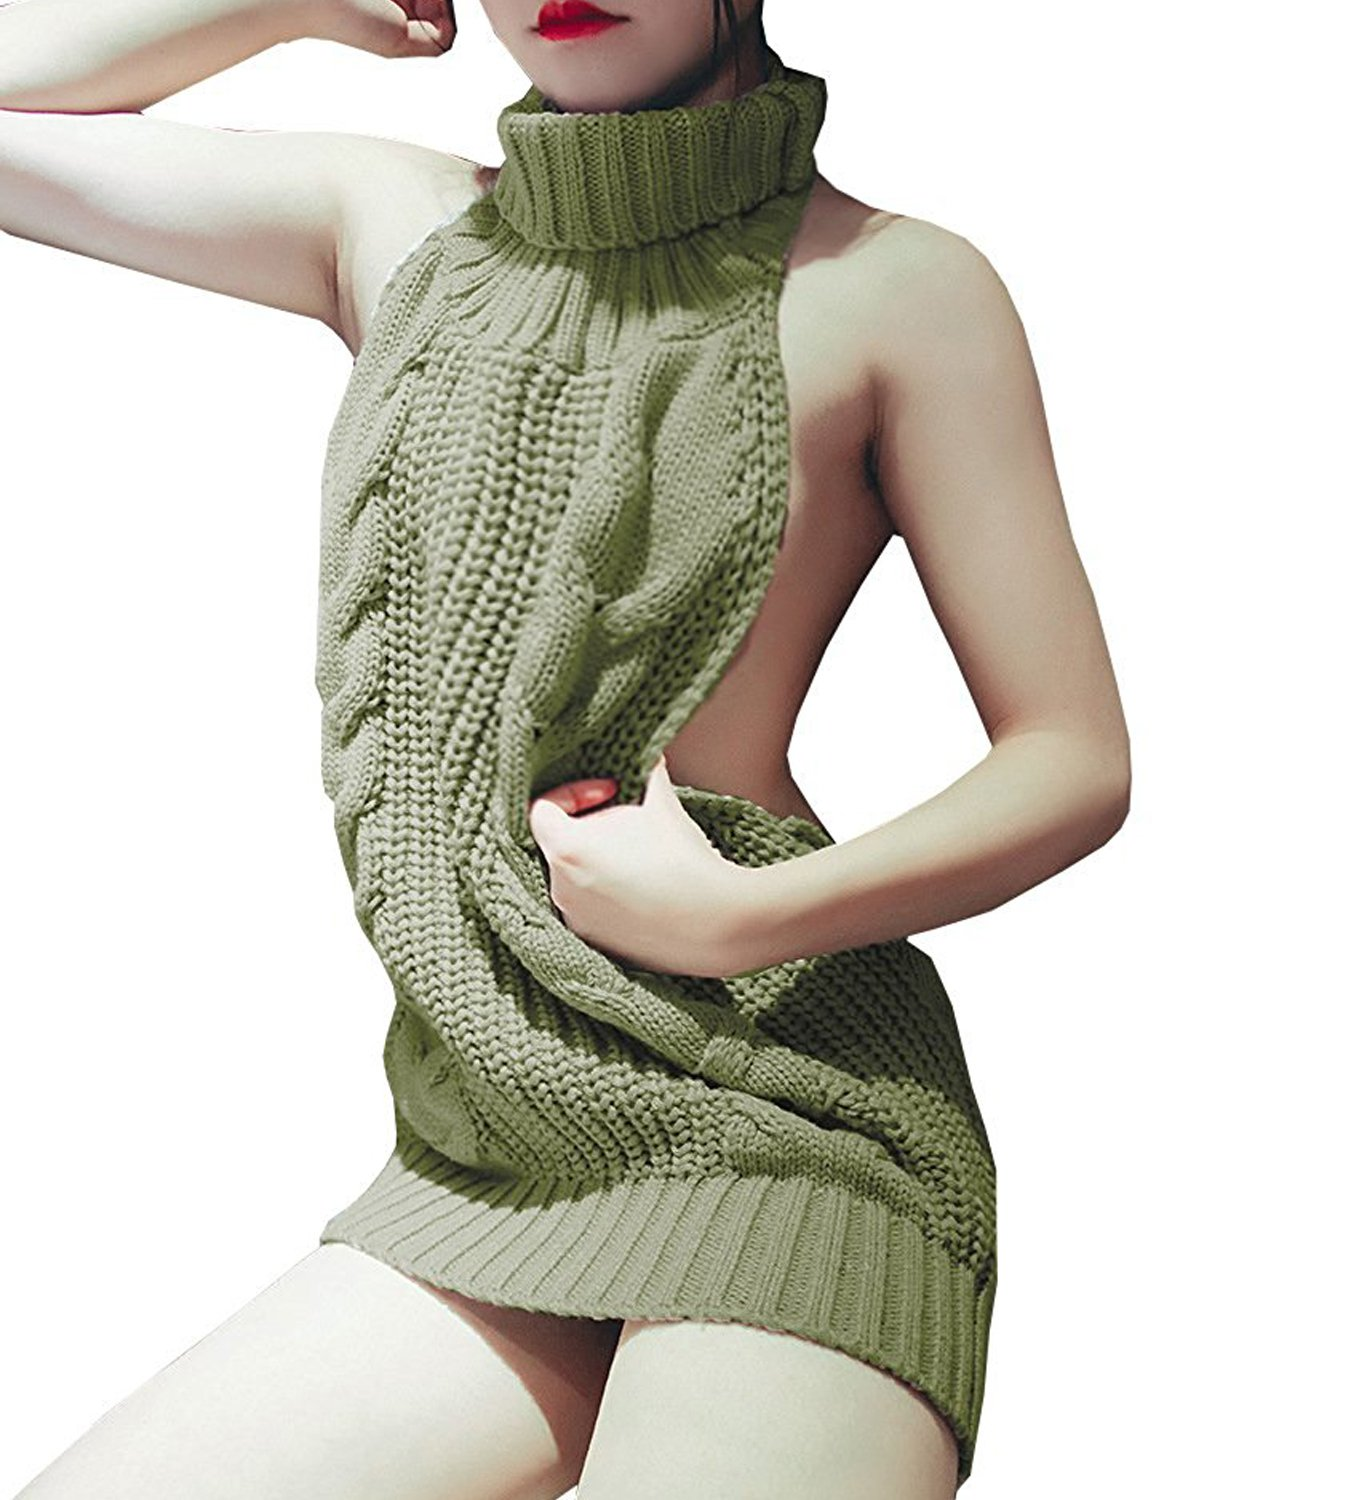 Olens Women's Women's Turtleneck Pullover Jumper Anime Cosplay Sweater Backless, Army Green, One Size